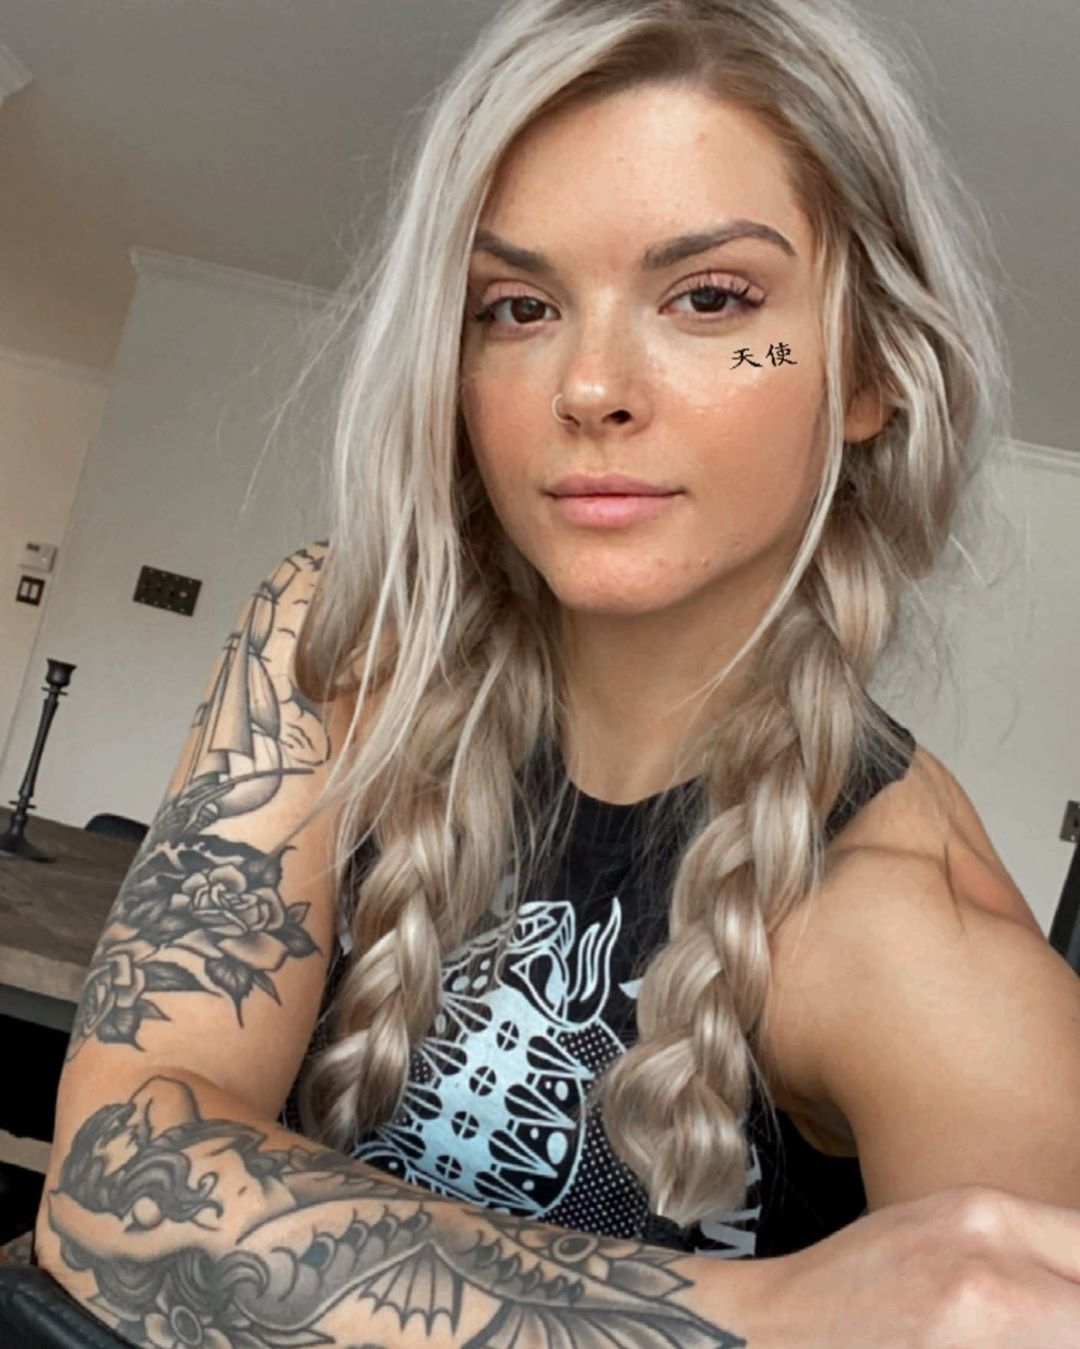 Chillin🖤 Ironculturesociety - - - - - Girlswithtattoos - Tattoos